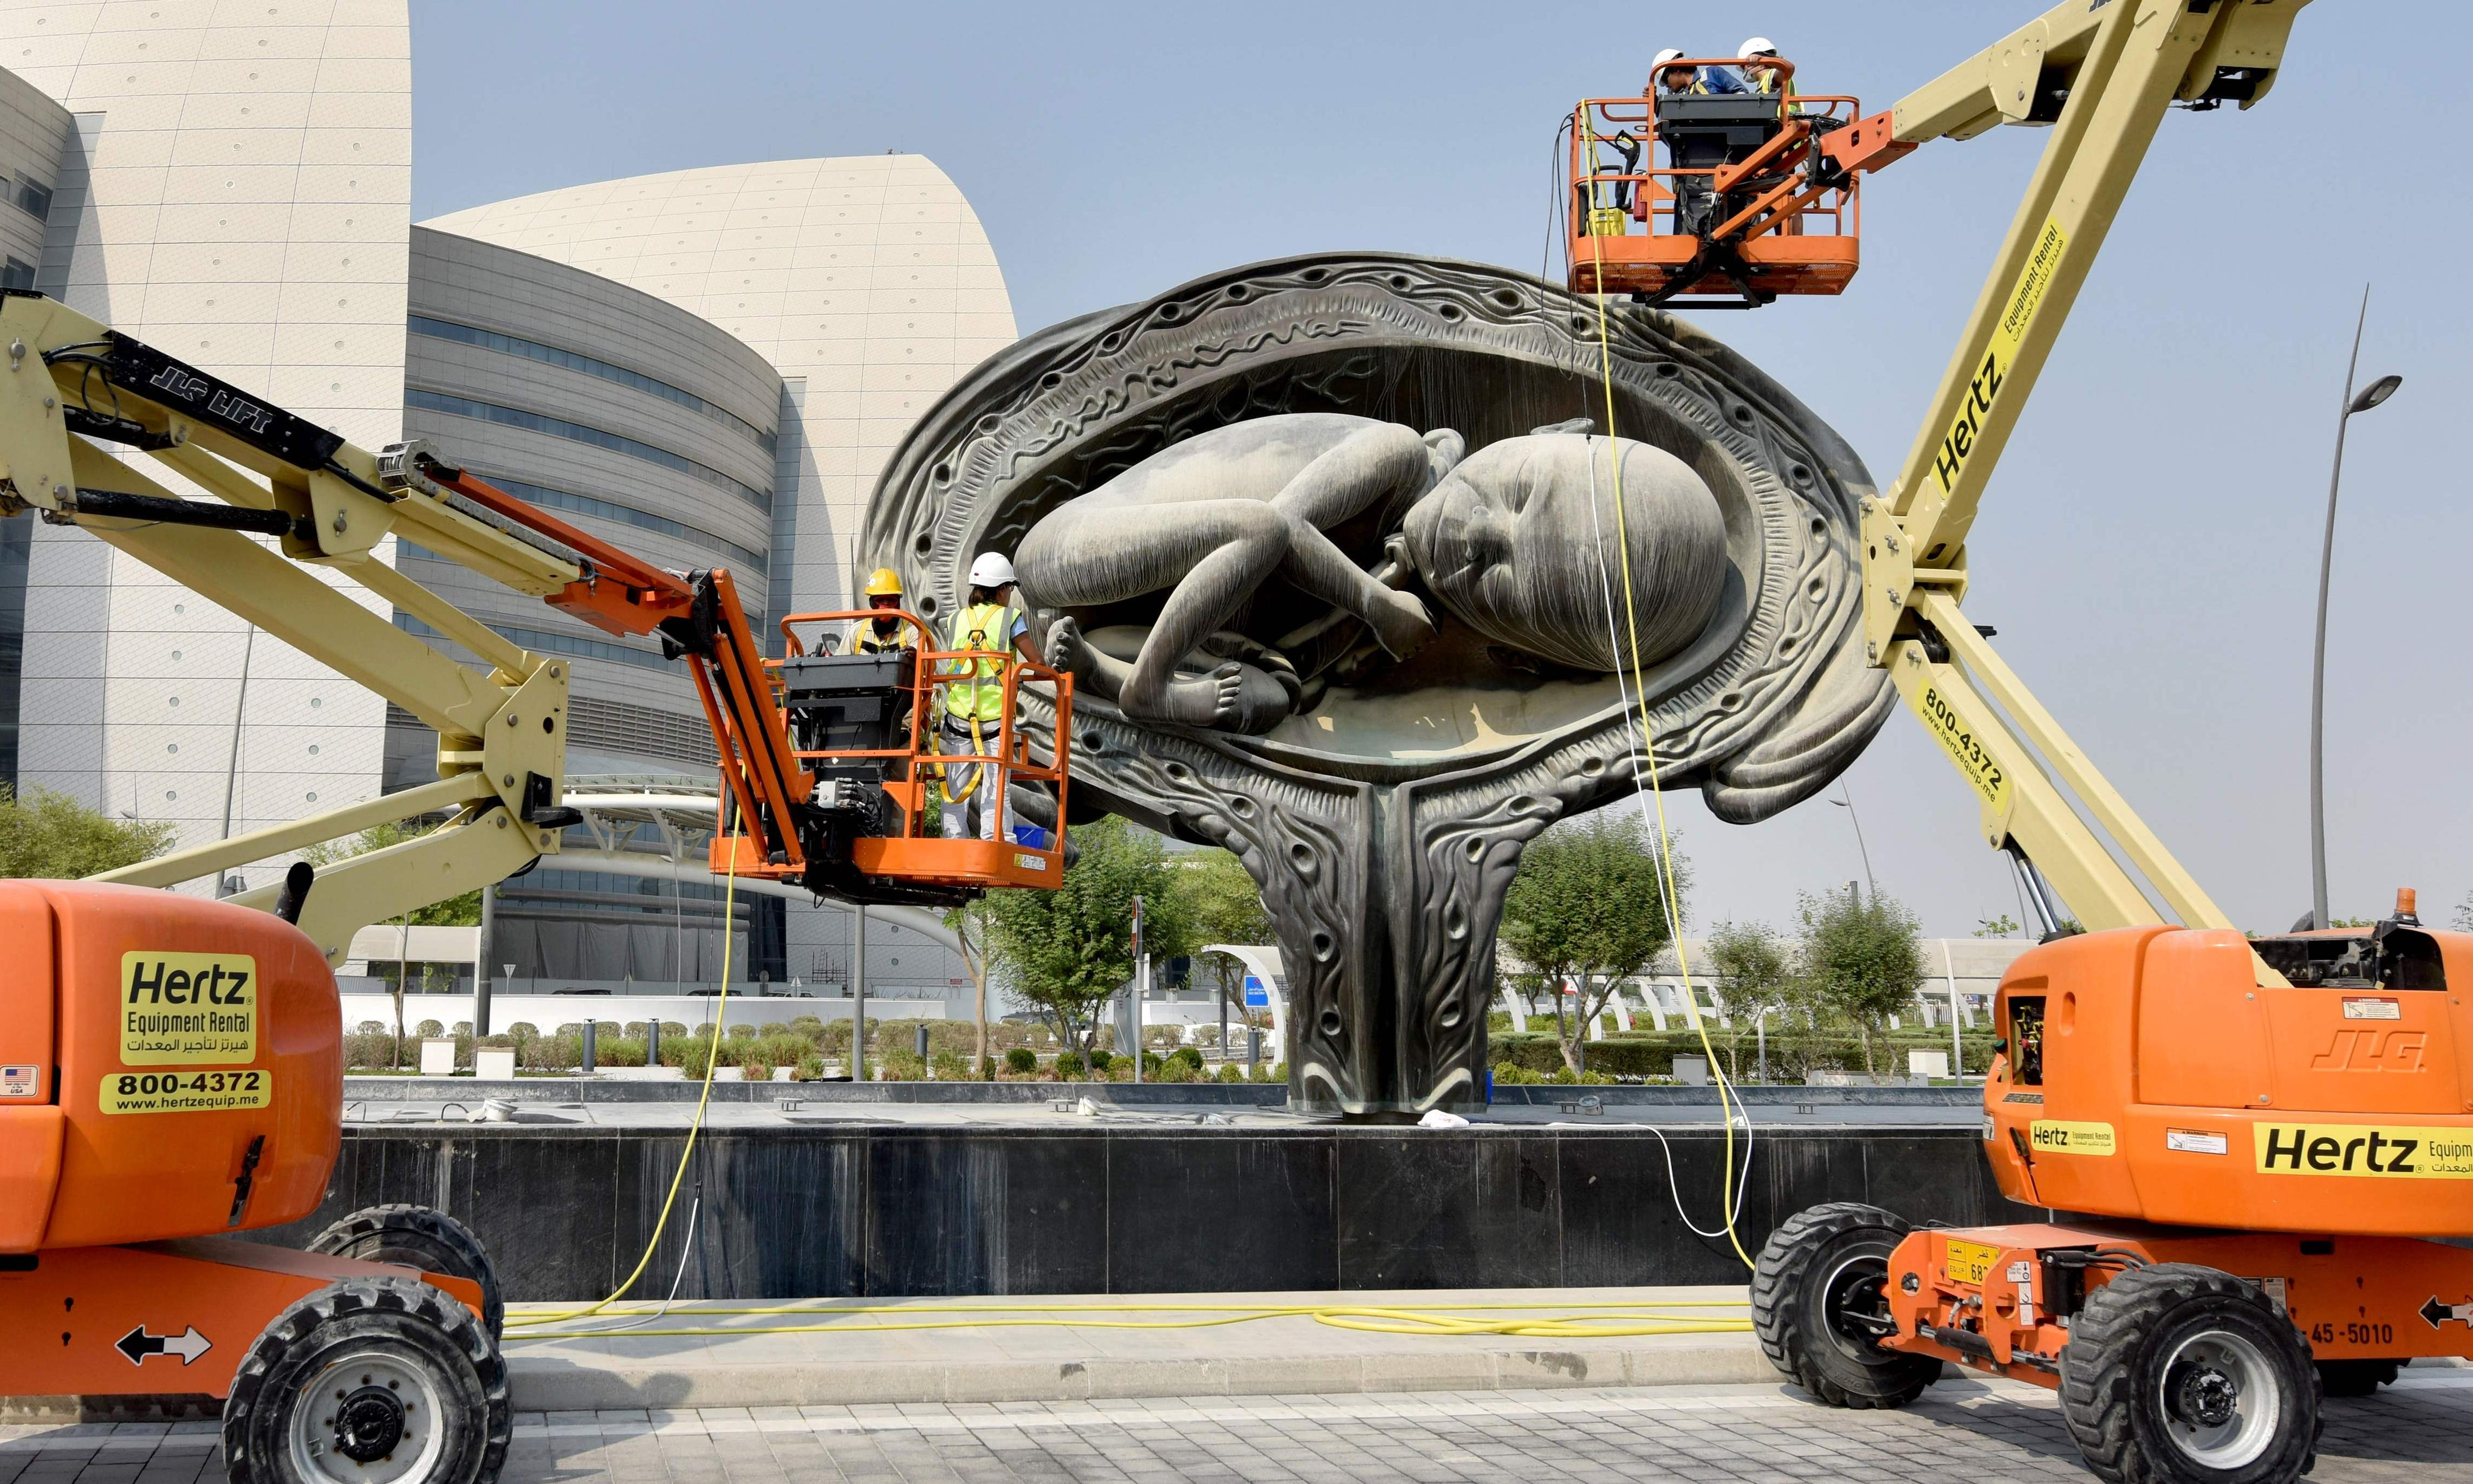 Damien Hirst delivers controversy with giant uterus sculptures at Qatar hospital